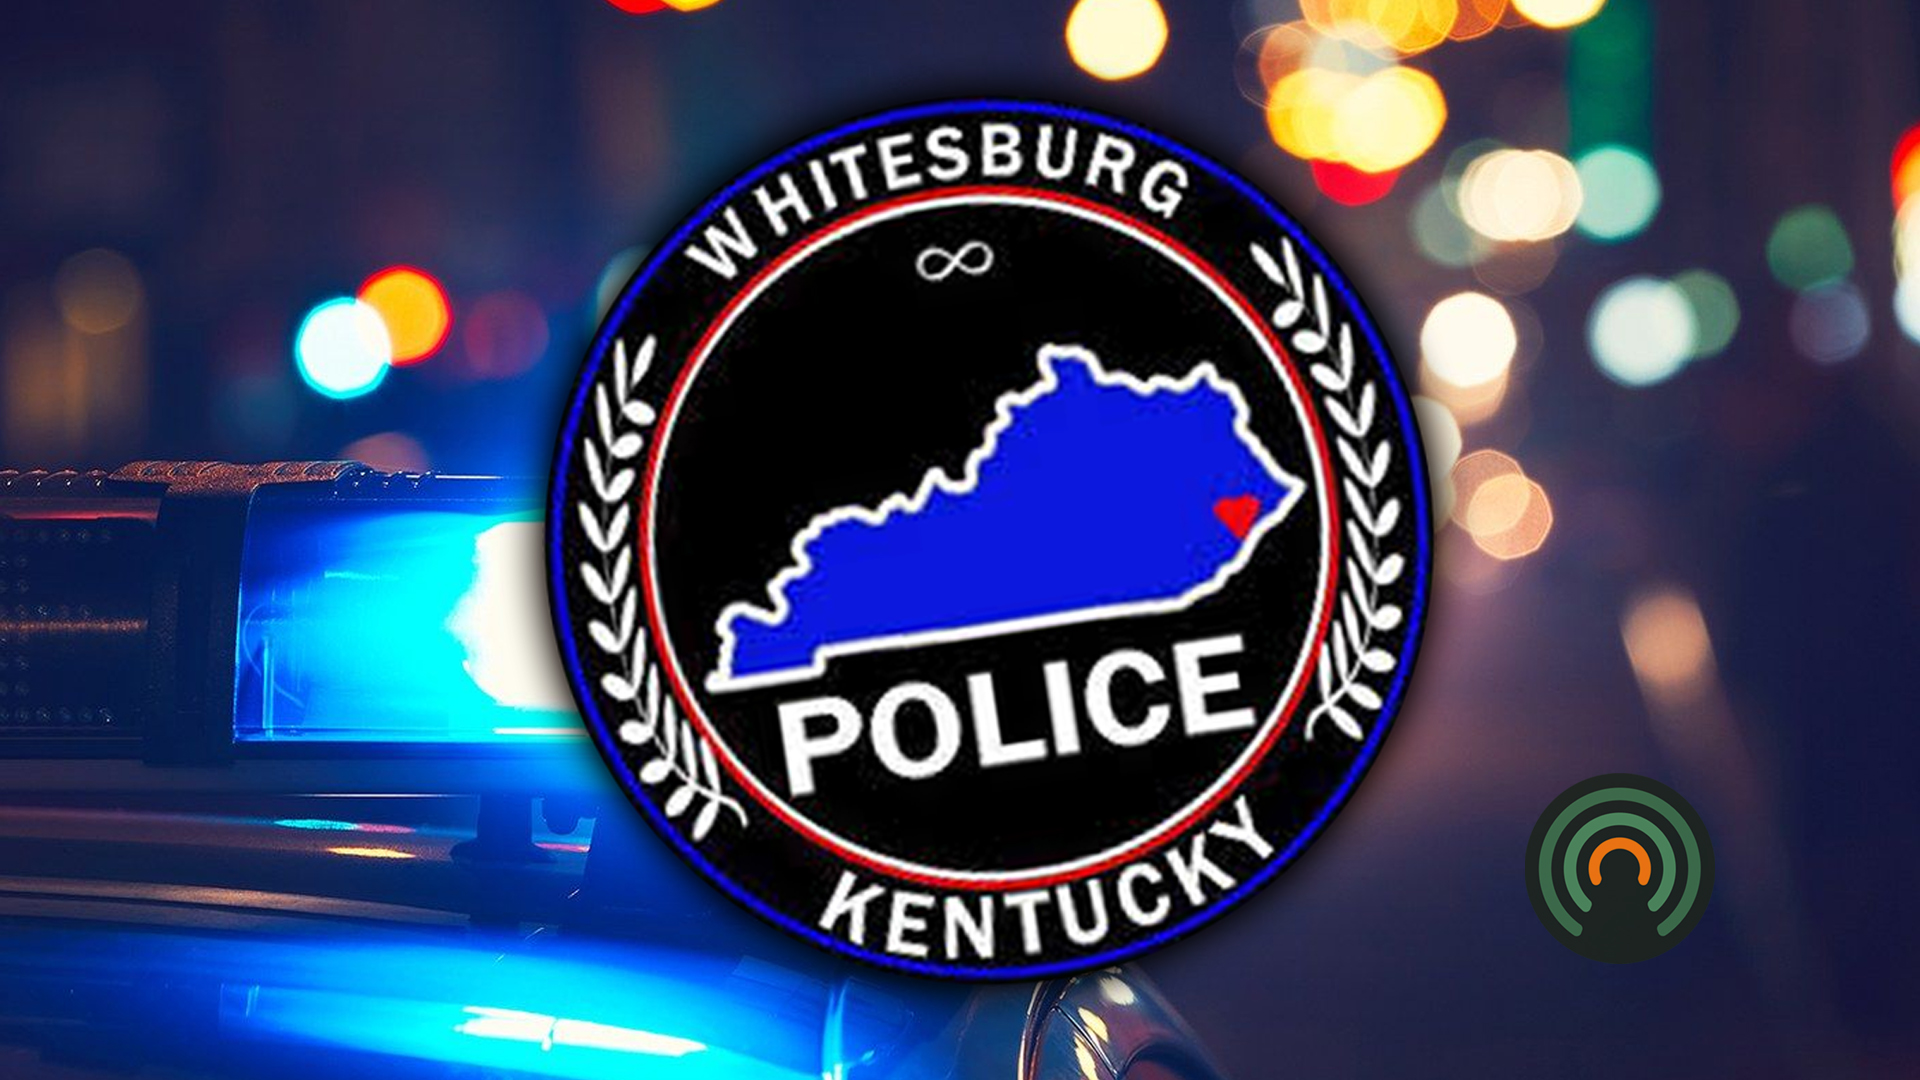 Whitesburg police chief tests positive for COVID-19